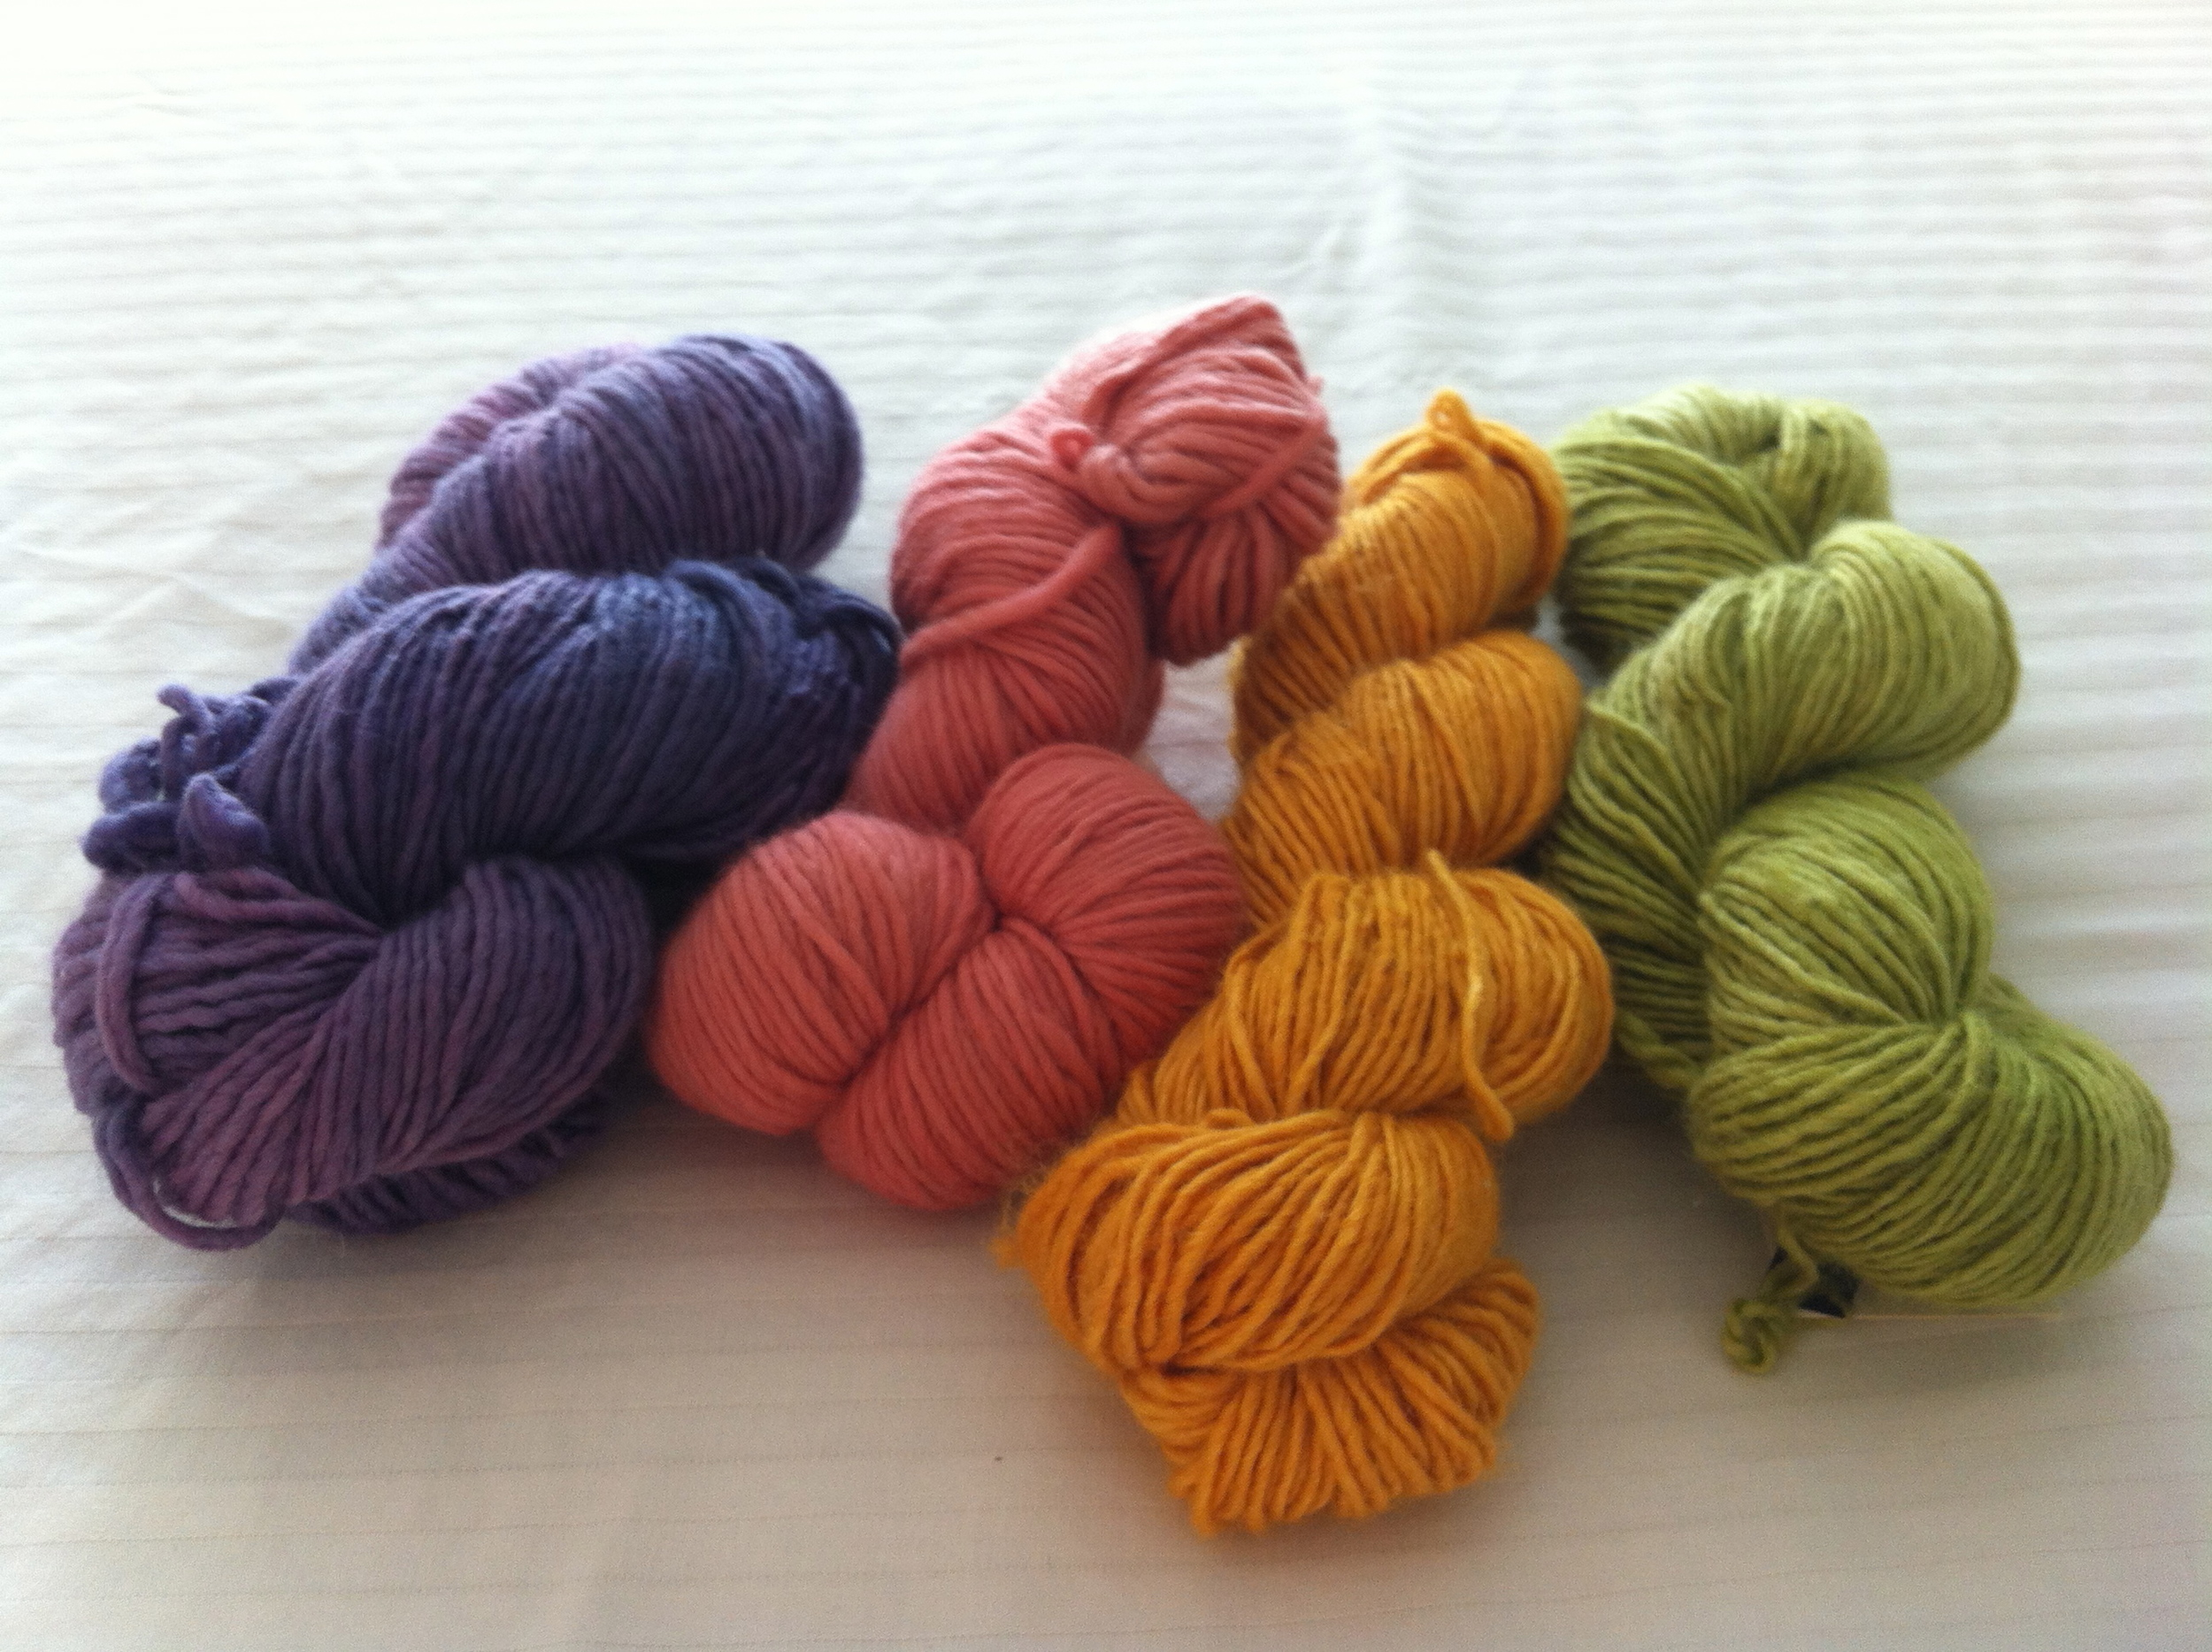 Some delicious Malabrigo yarn in worsted and fingering weights.